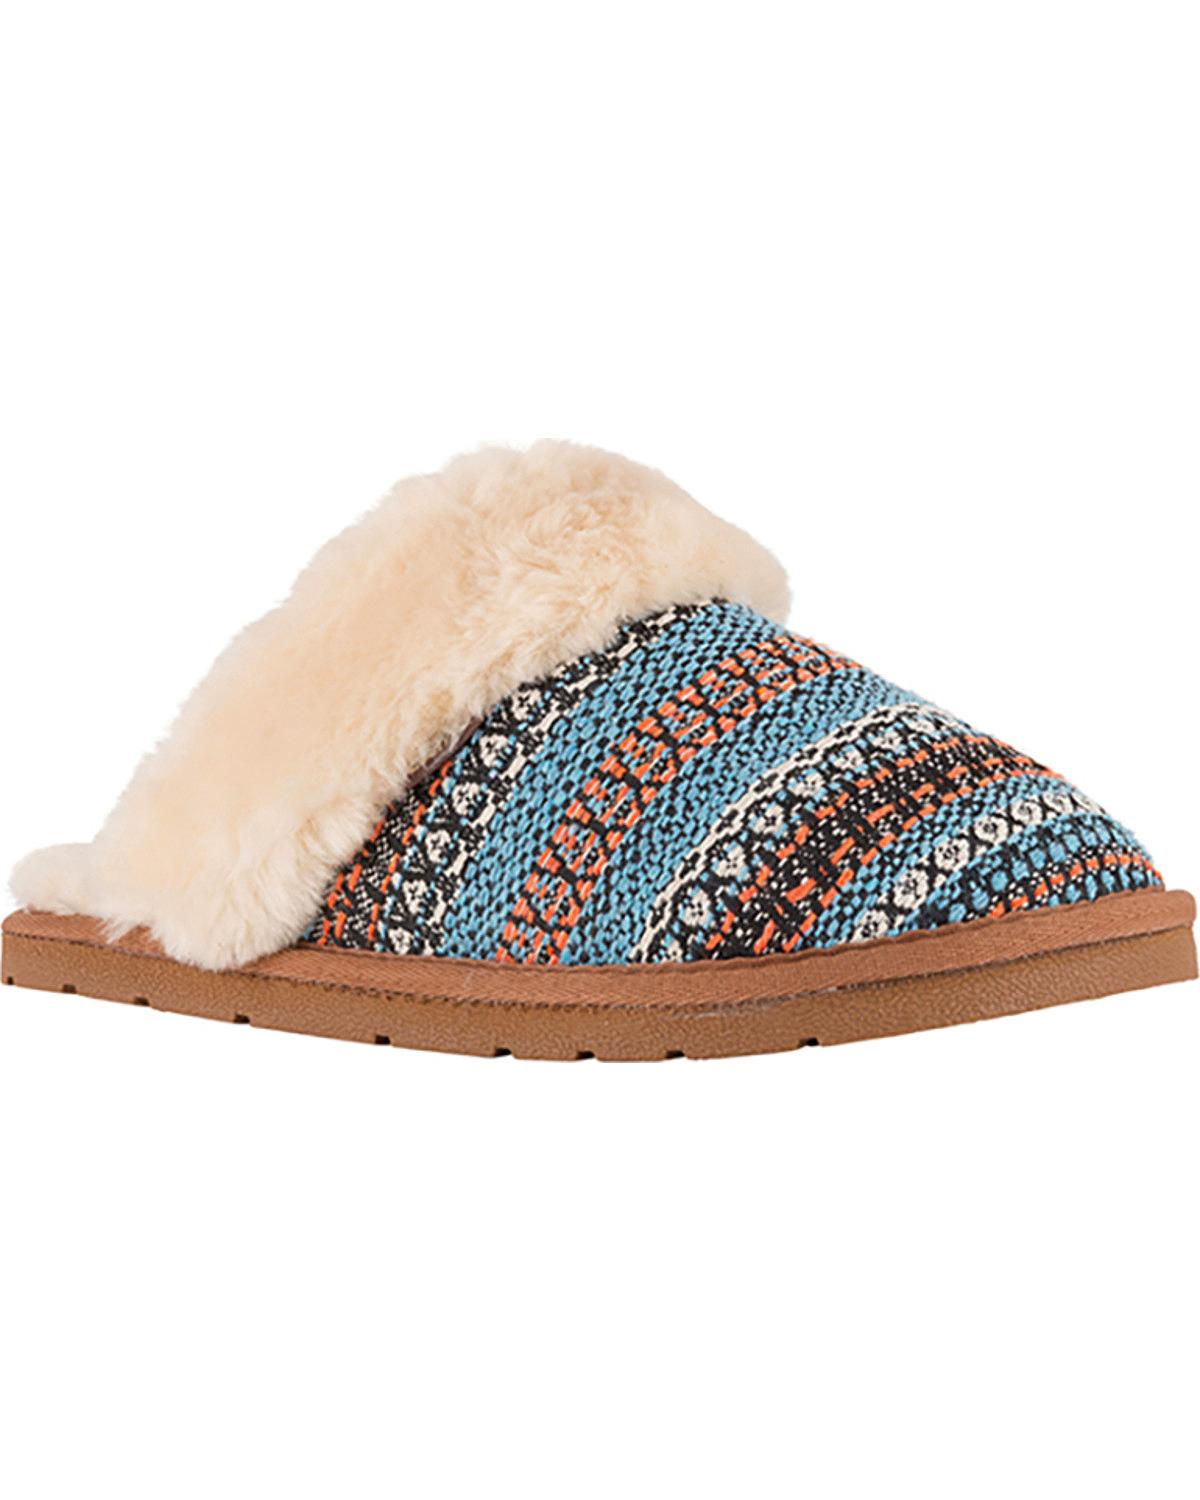 Lamo Footwear Women's Juarez Scuff Slippers Ew1470-92 by Lamo Footwear